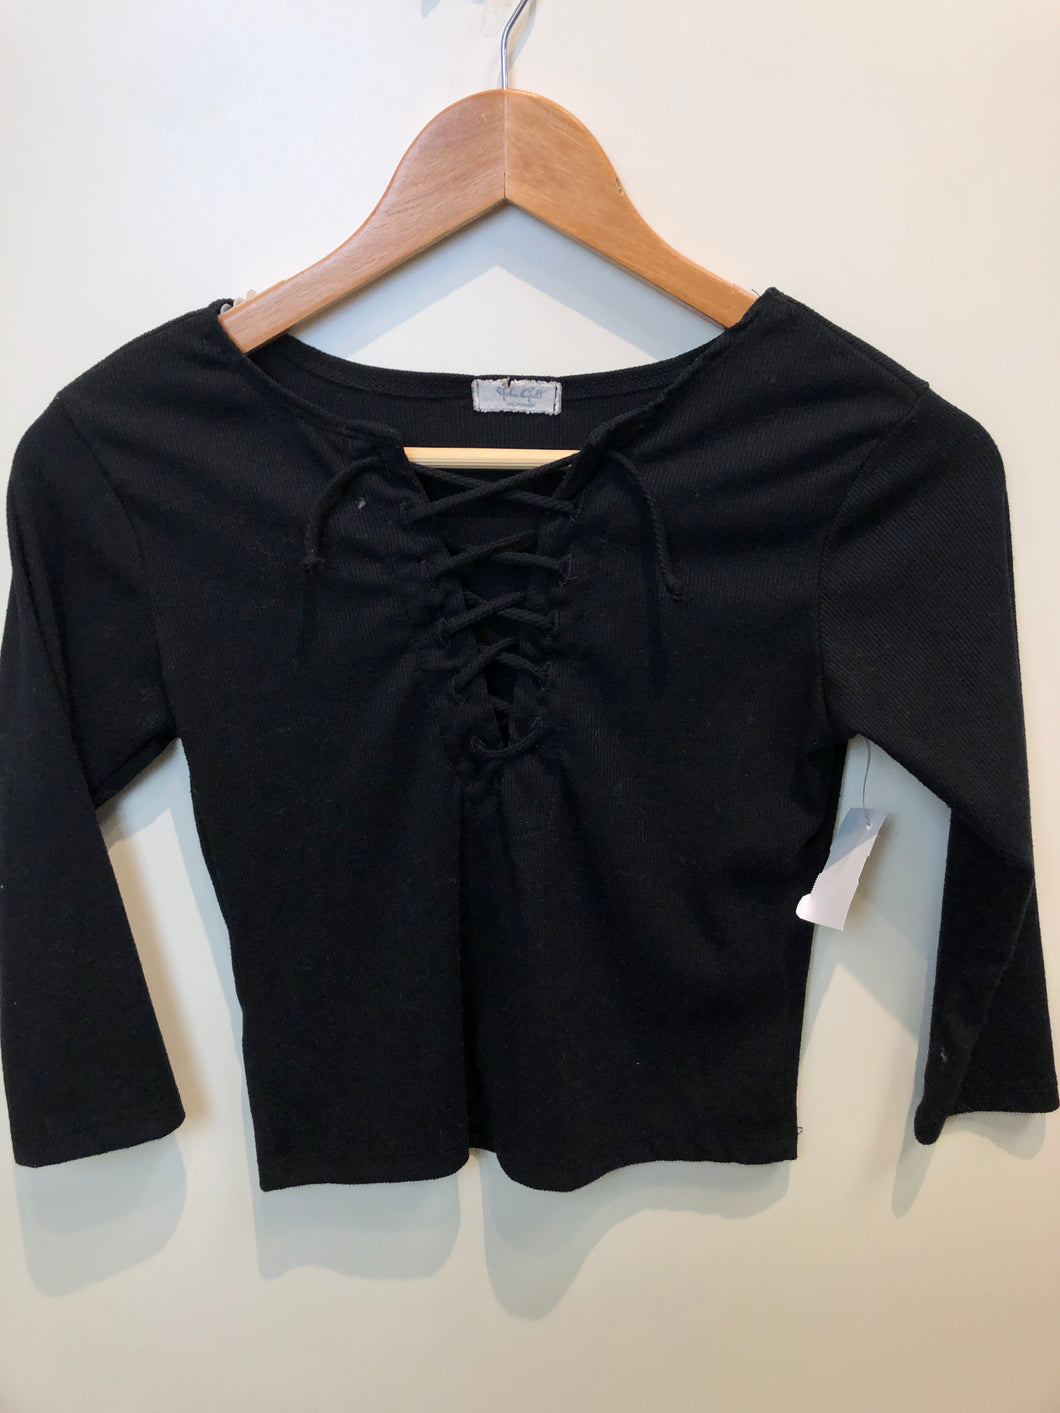 John Galt Womens Long Sleeve Top Size Small